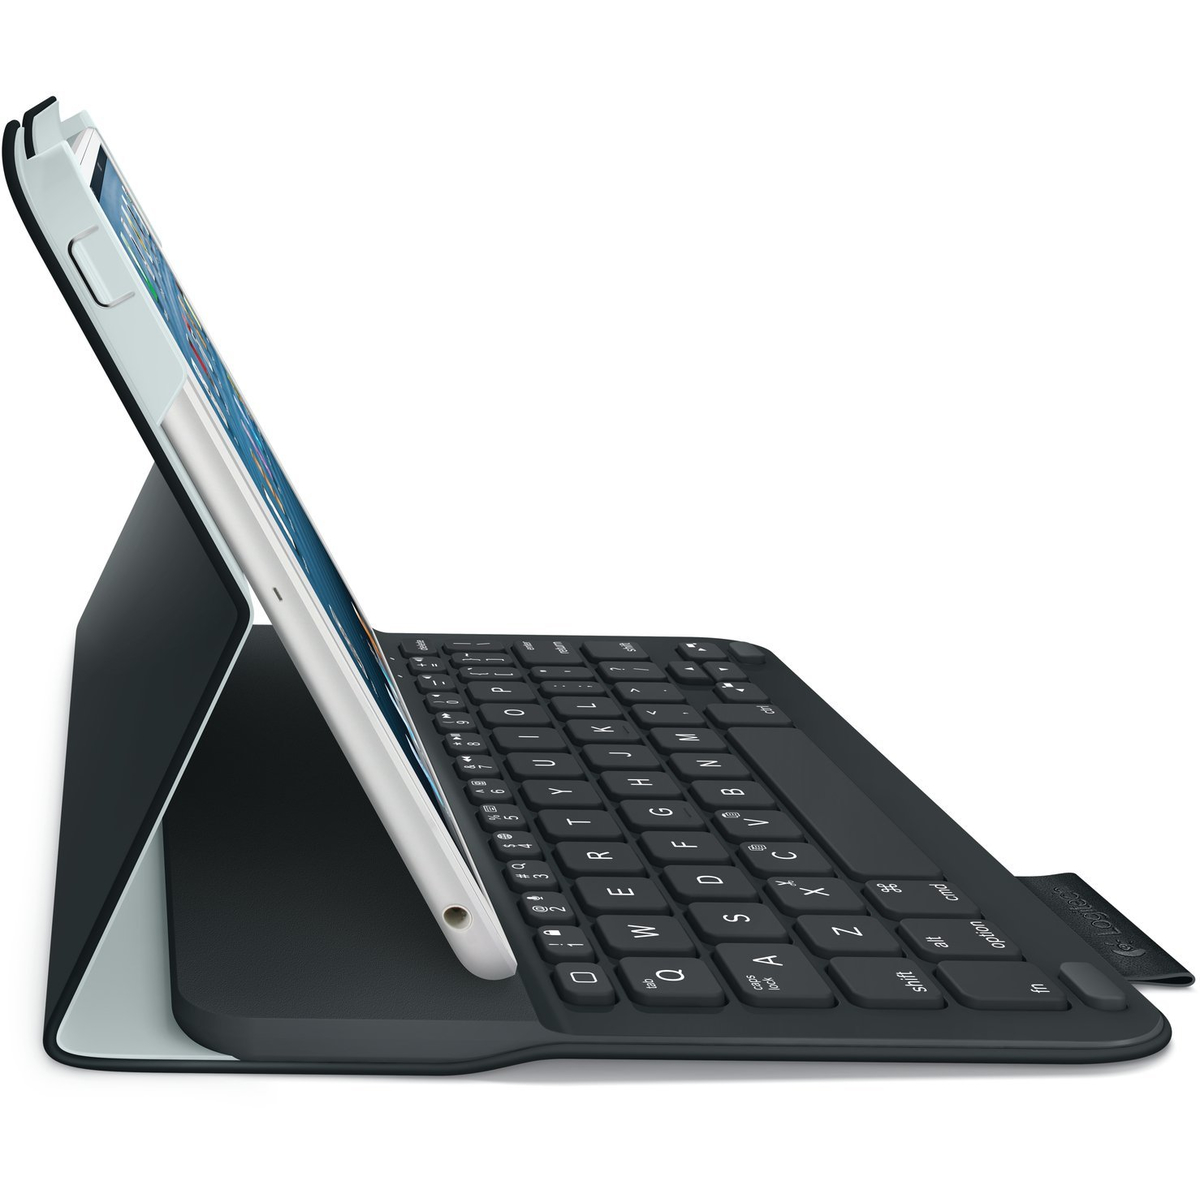 Logitech Ultrathin Keyboard Folio m1 iPad mini Black QWERTZ